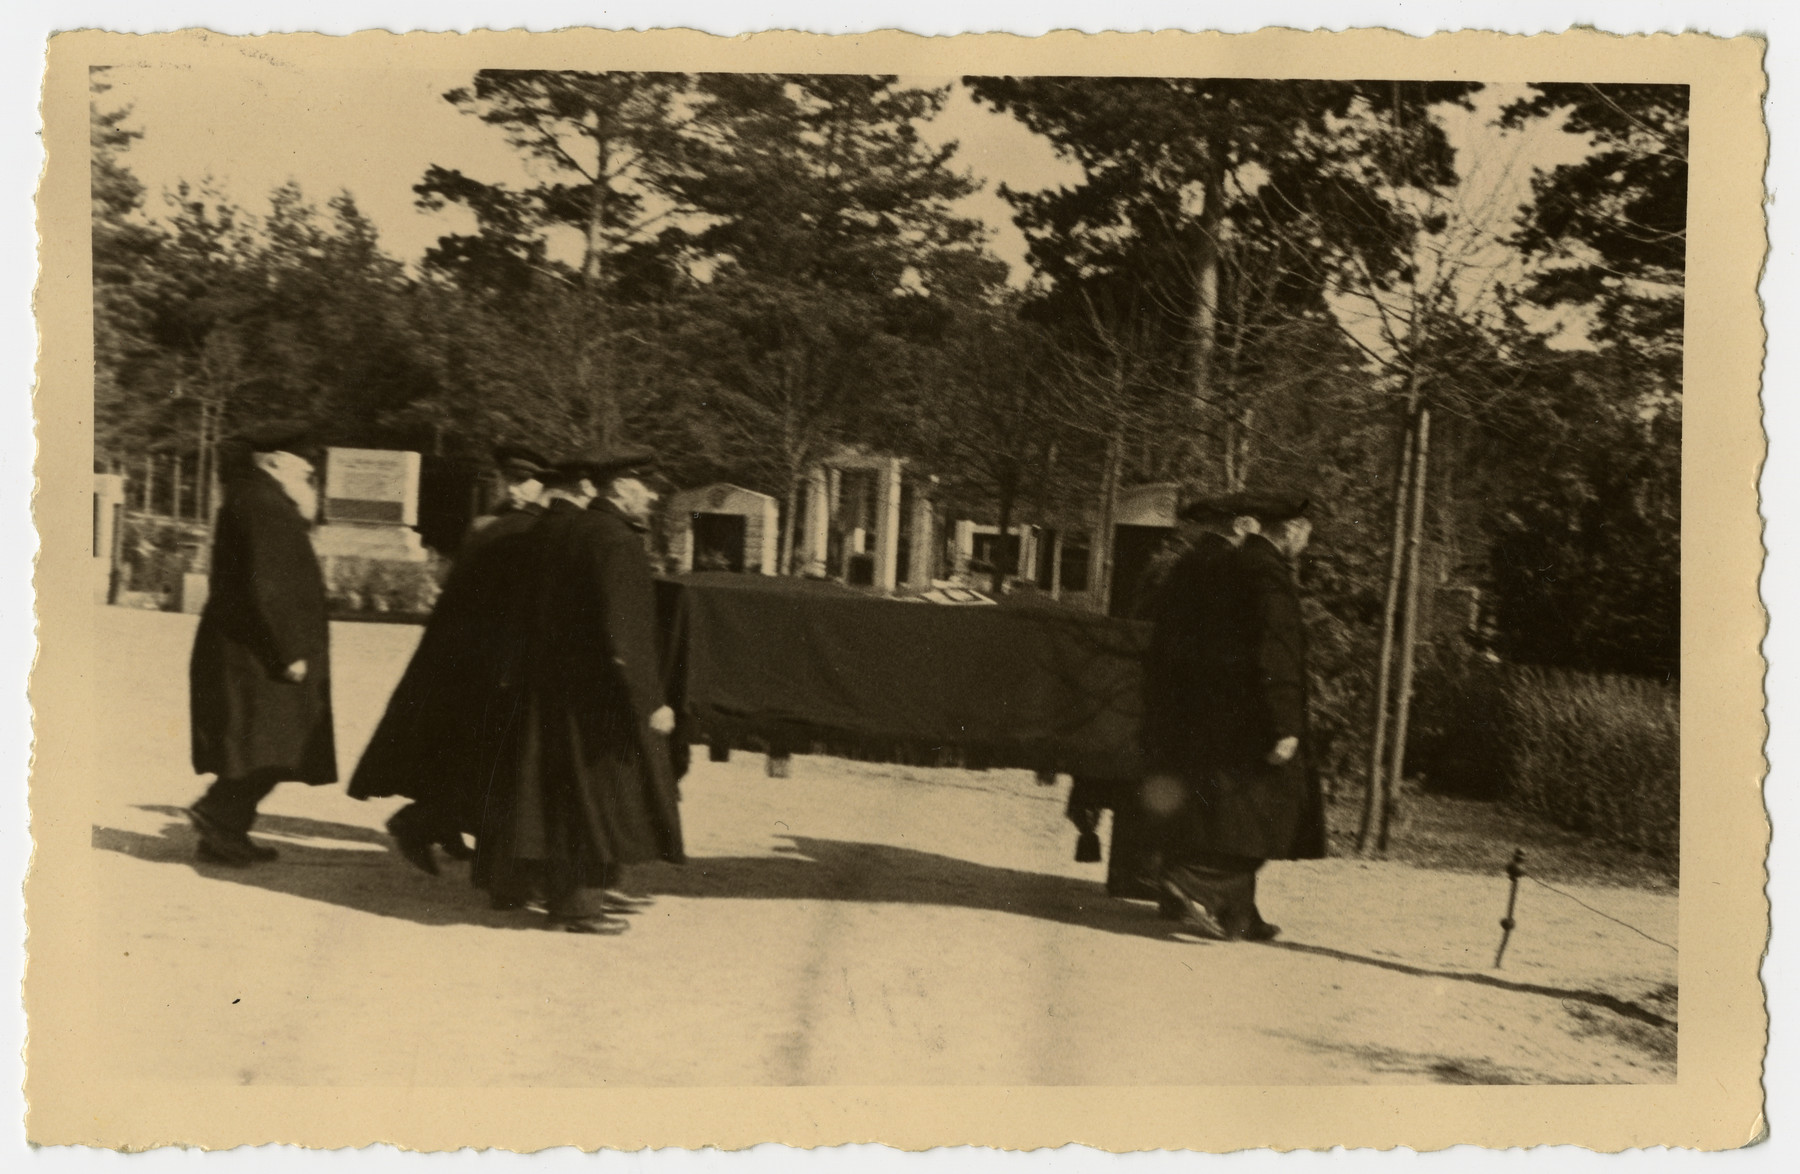 The casket holding Freida Albin is carried to the cemetery.